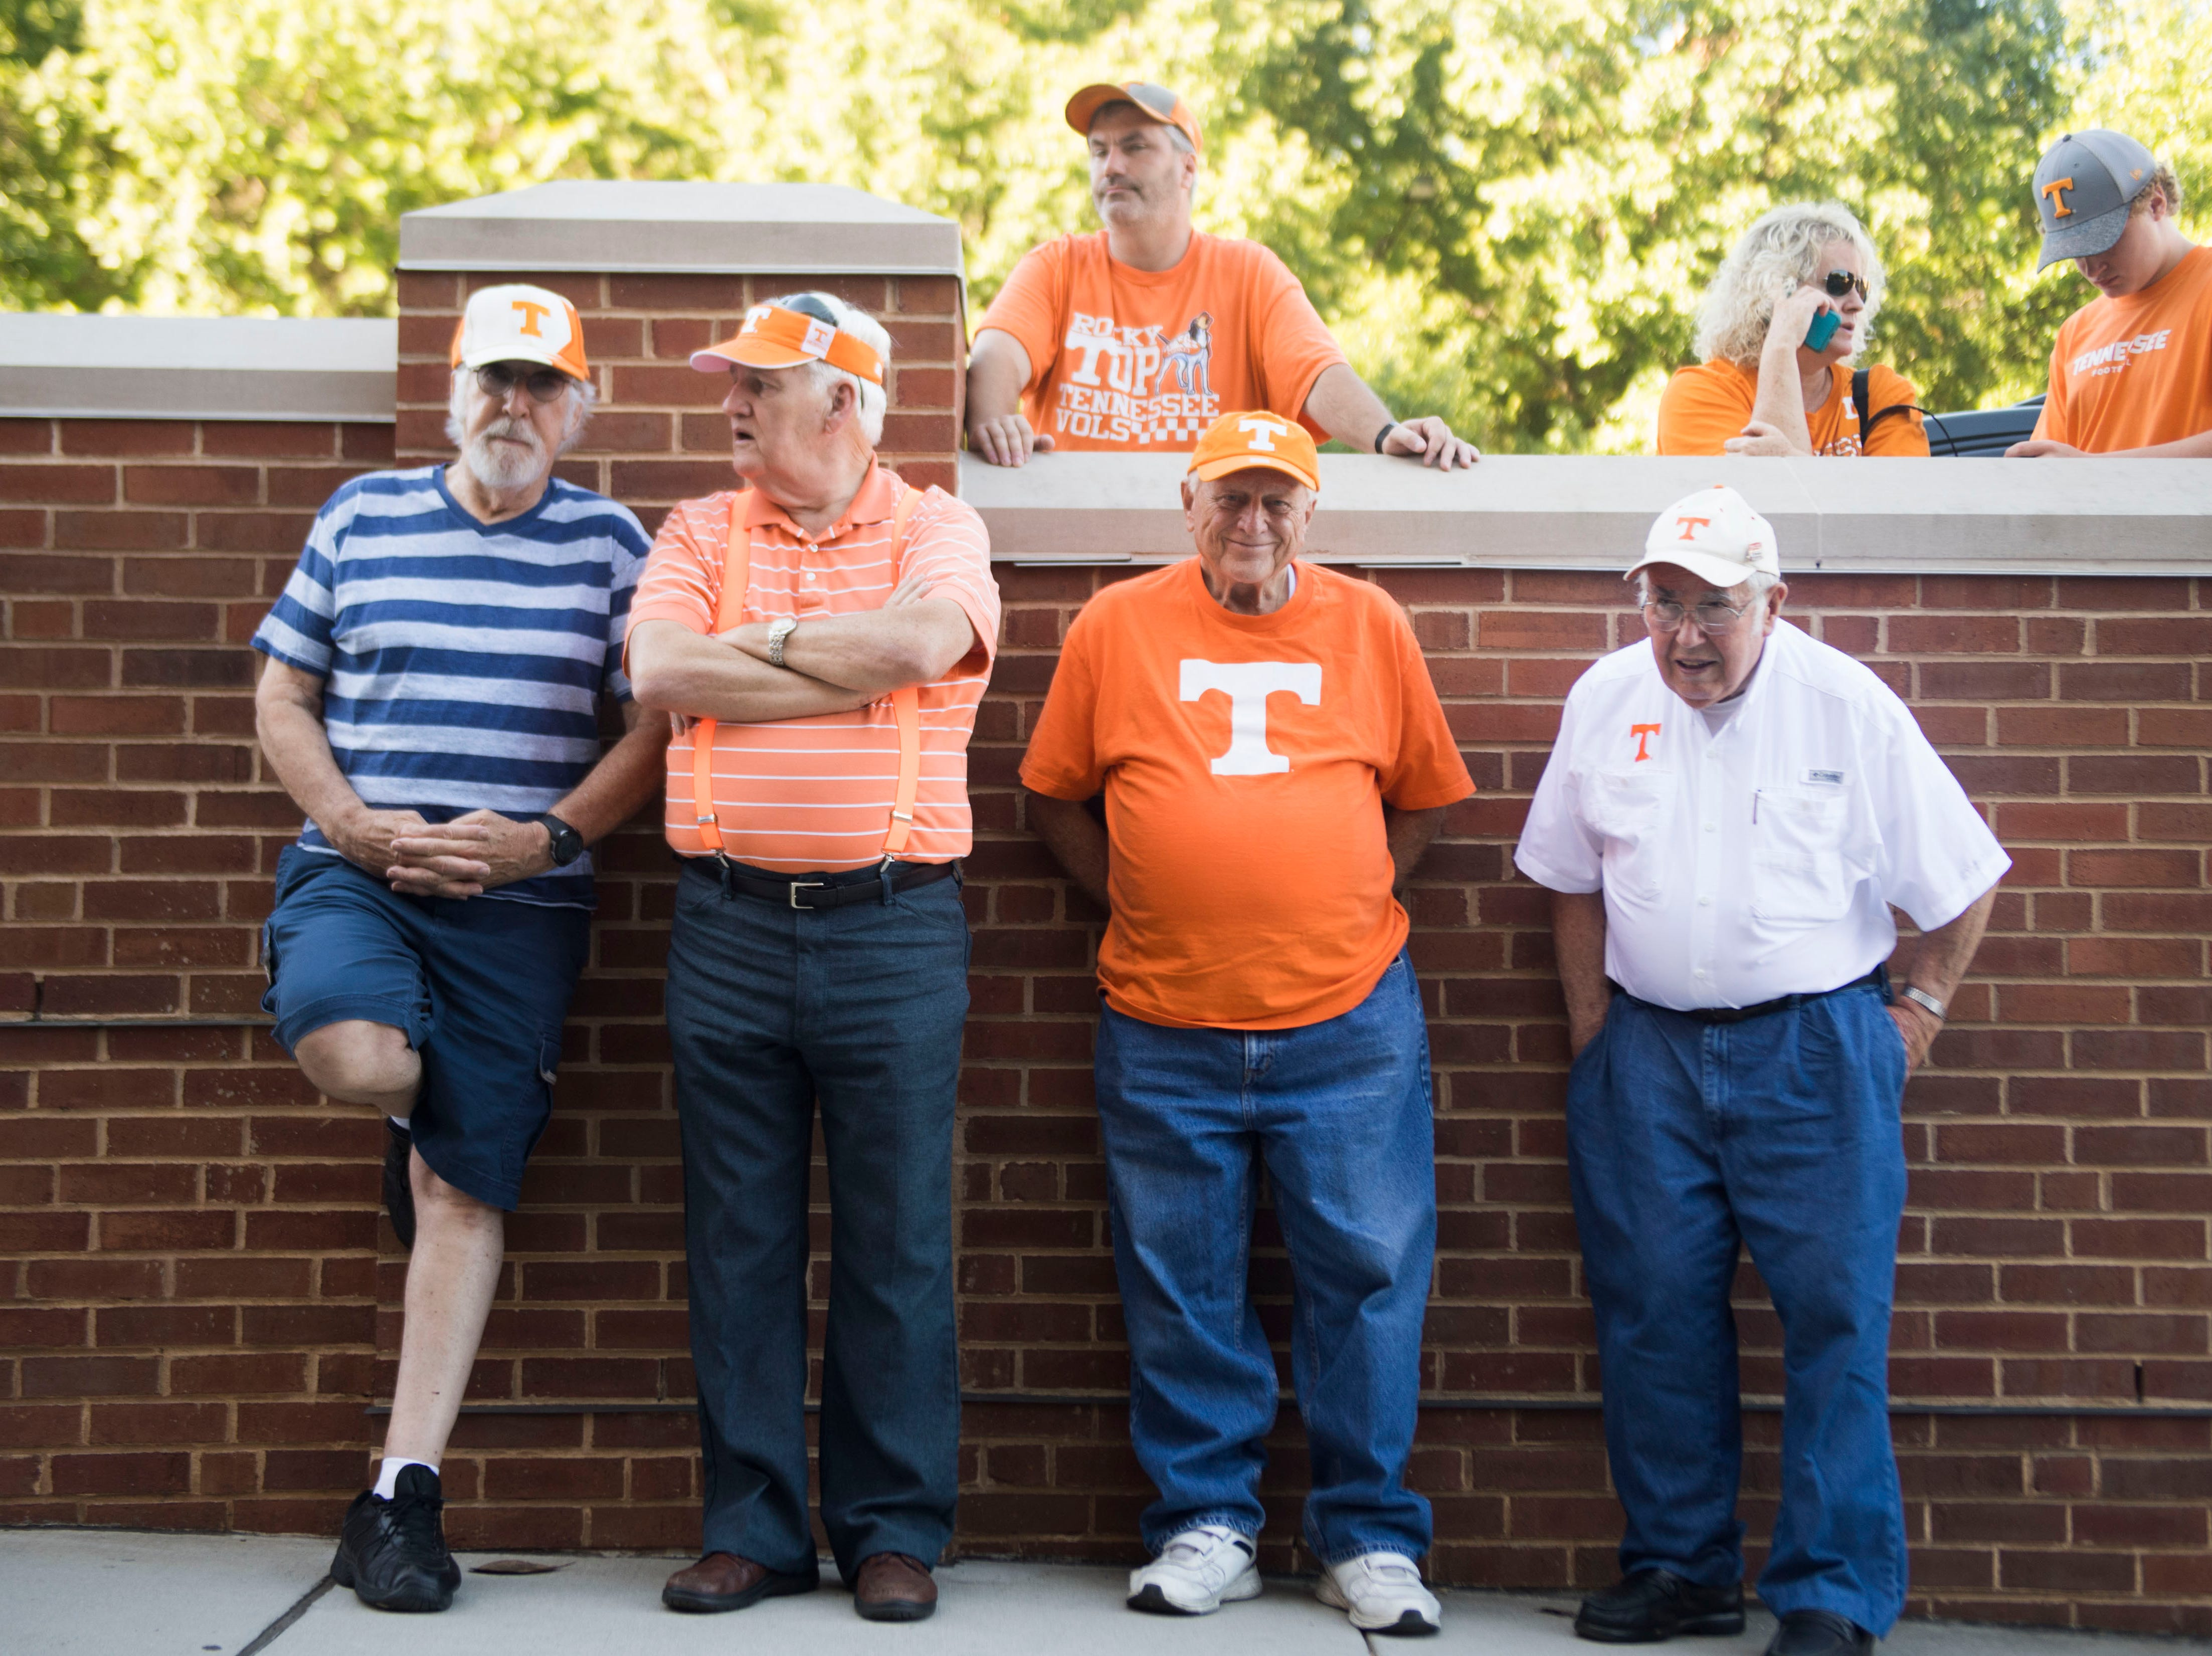 Fans stand after the Vol Walk outside Neyland Stadium before a game between University of Tennessee and the University of Texas at El Paso Saturday, Sept. 15, 2018.